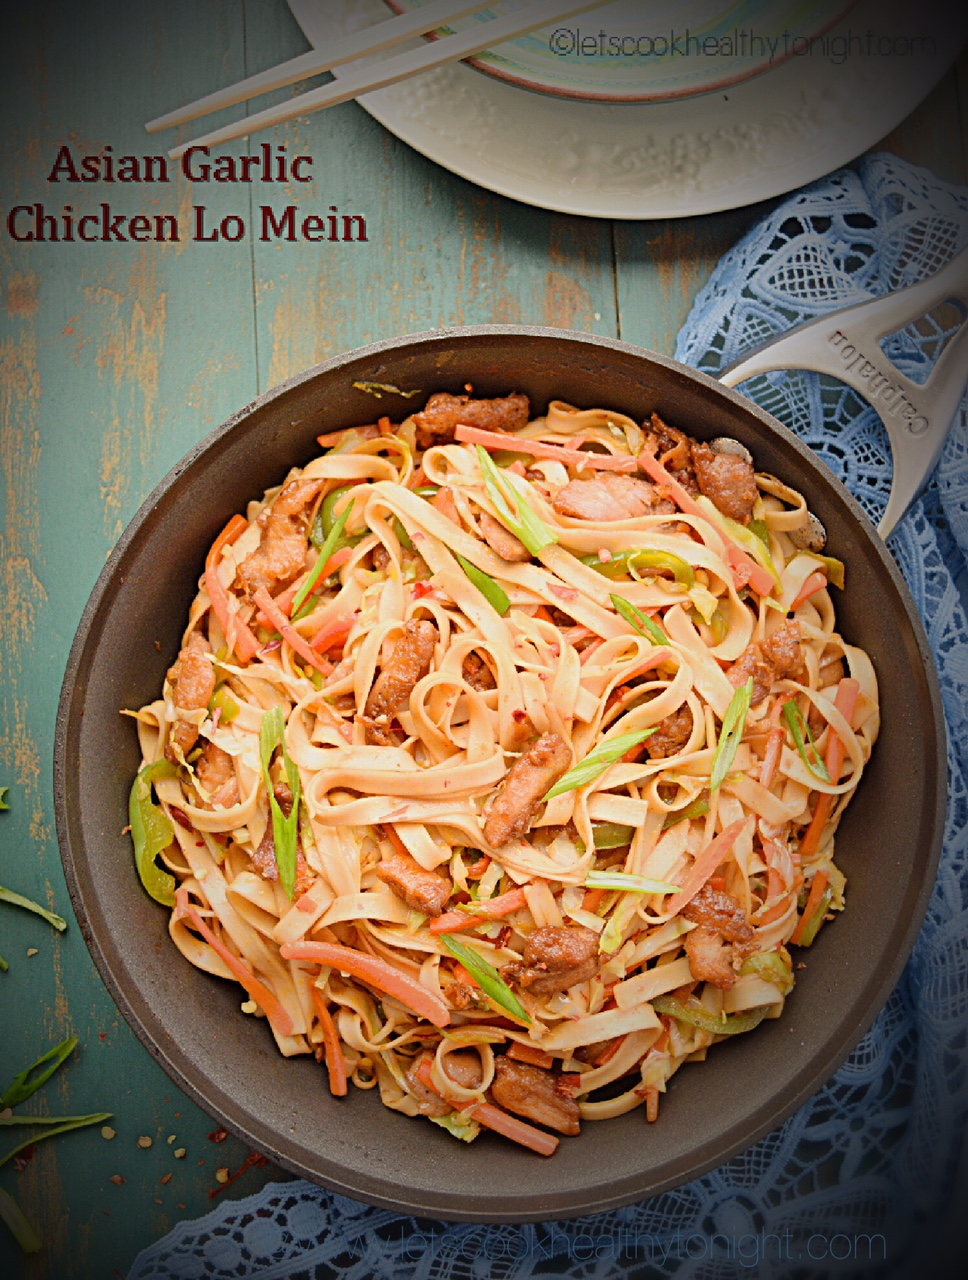 Asian garlic chicken lo mein lets cook healthy tonight asian garlic chicken lo mein an easy chicken lo mein recipe loaded with spicy marinated chicken and vegetables forumfinder Images